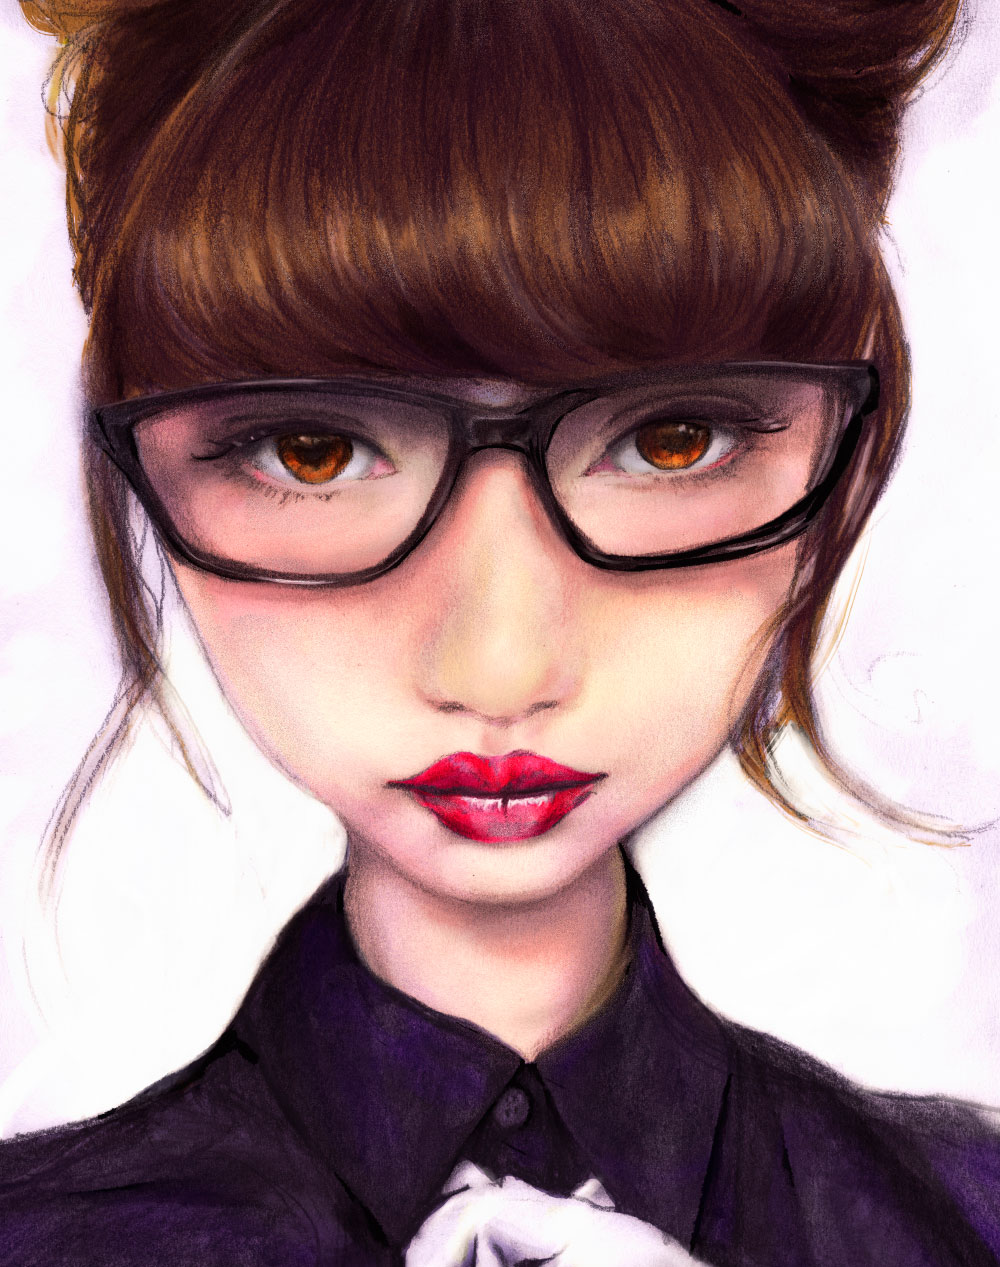 Artist Danny Roberts Portrait of Japanese Model Risa Nakamura (RisaDoll) wearing Glasses